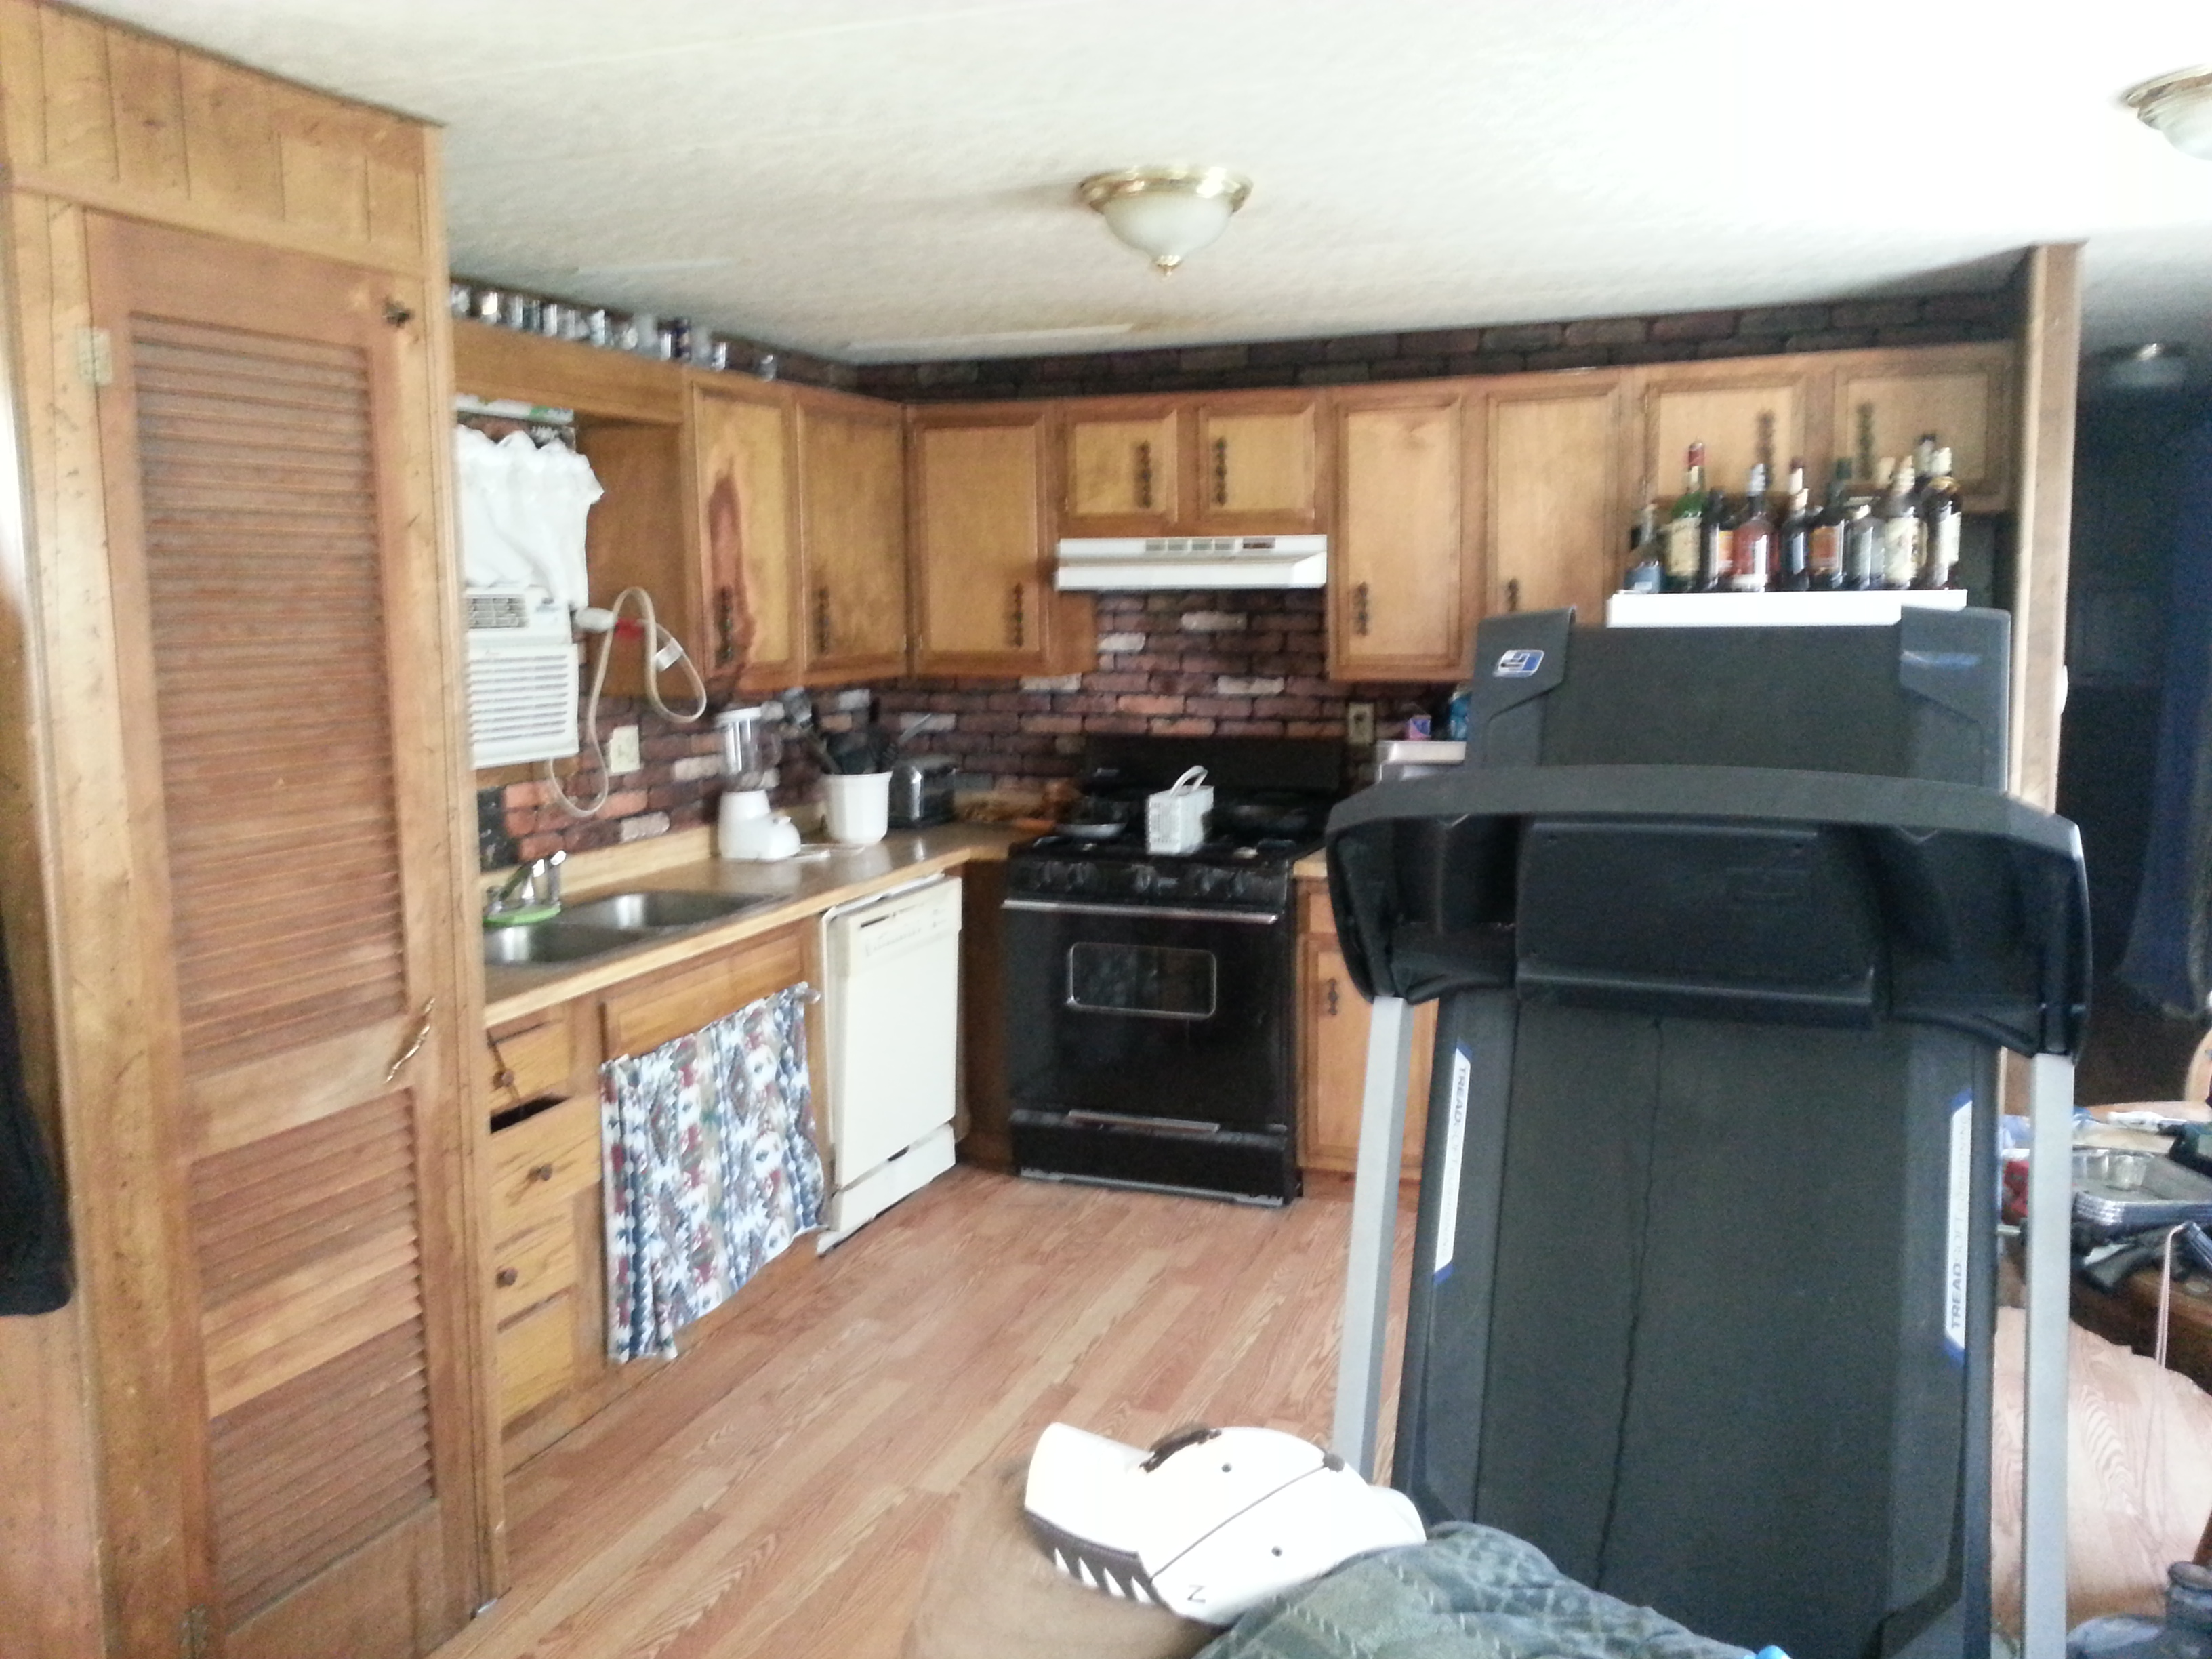 1st North S. 3 Bed Moble Home Kitchen